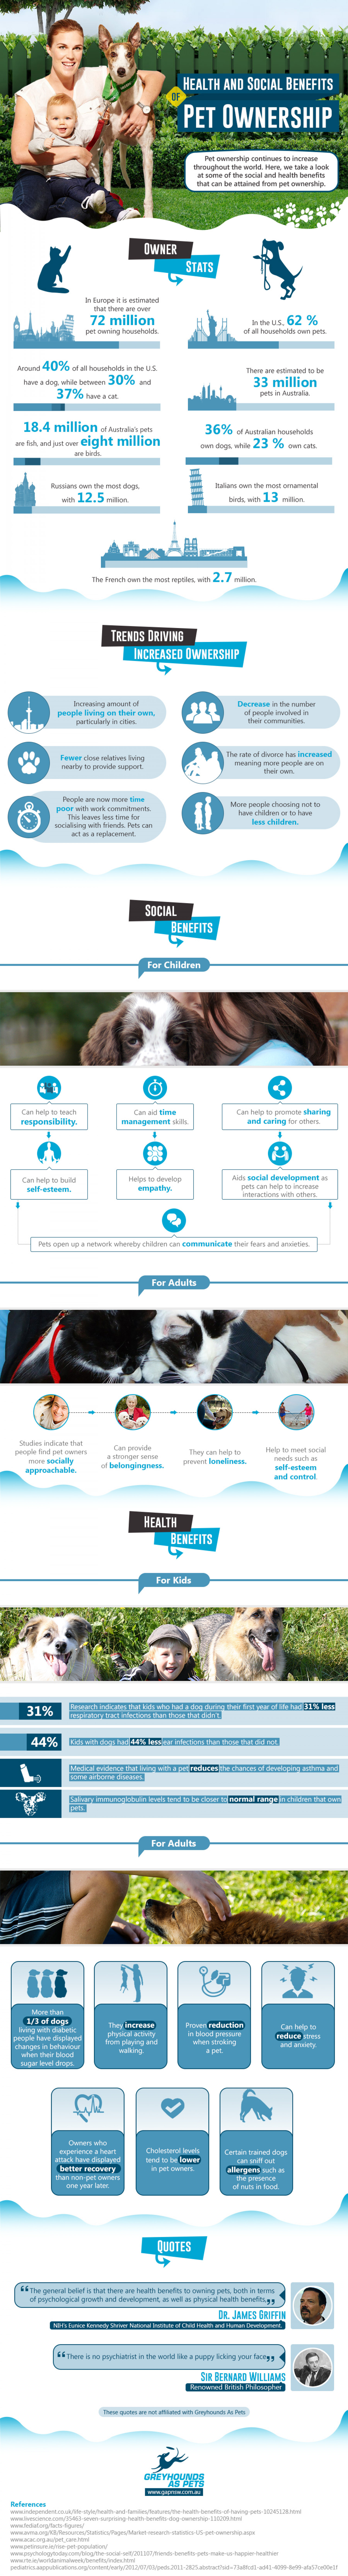 Health and Social Benefits of Pet Ownership Infographic